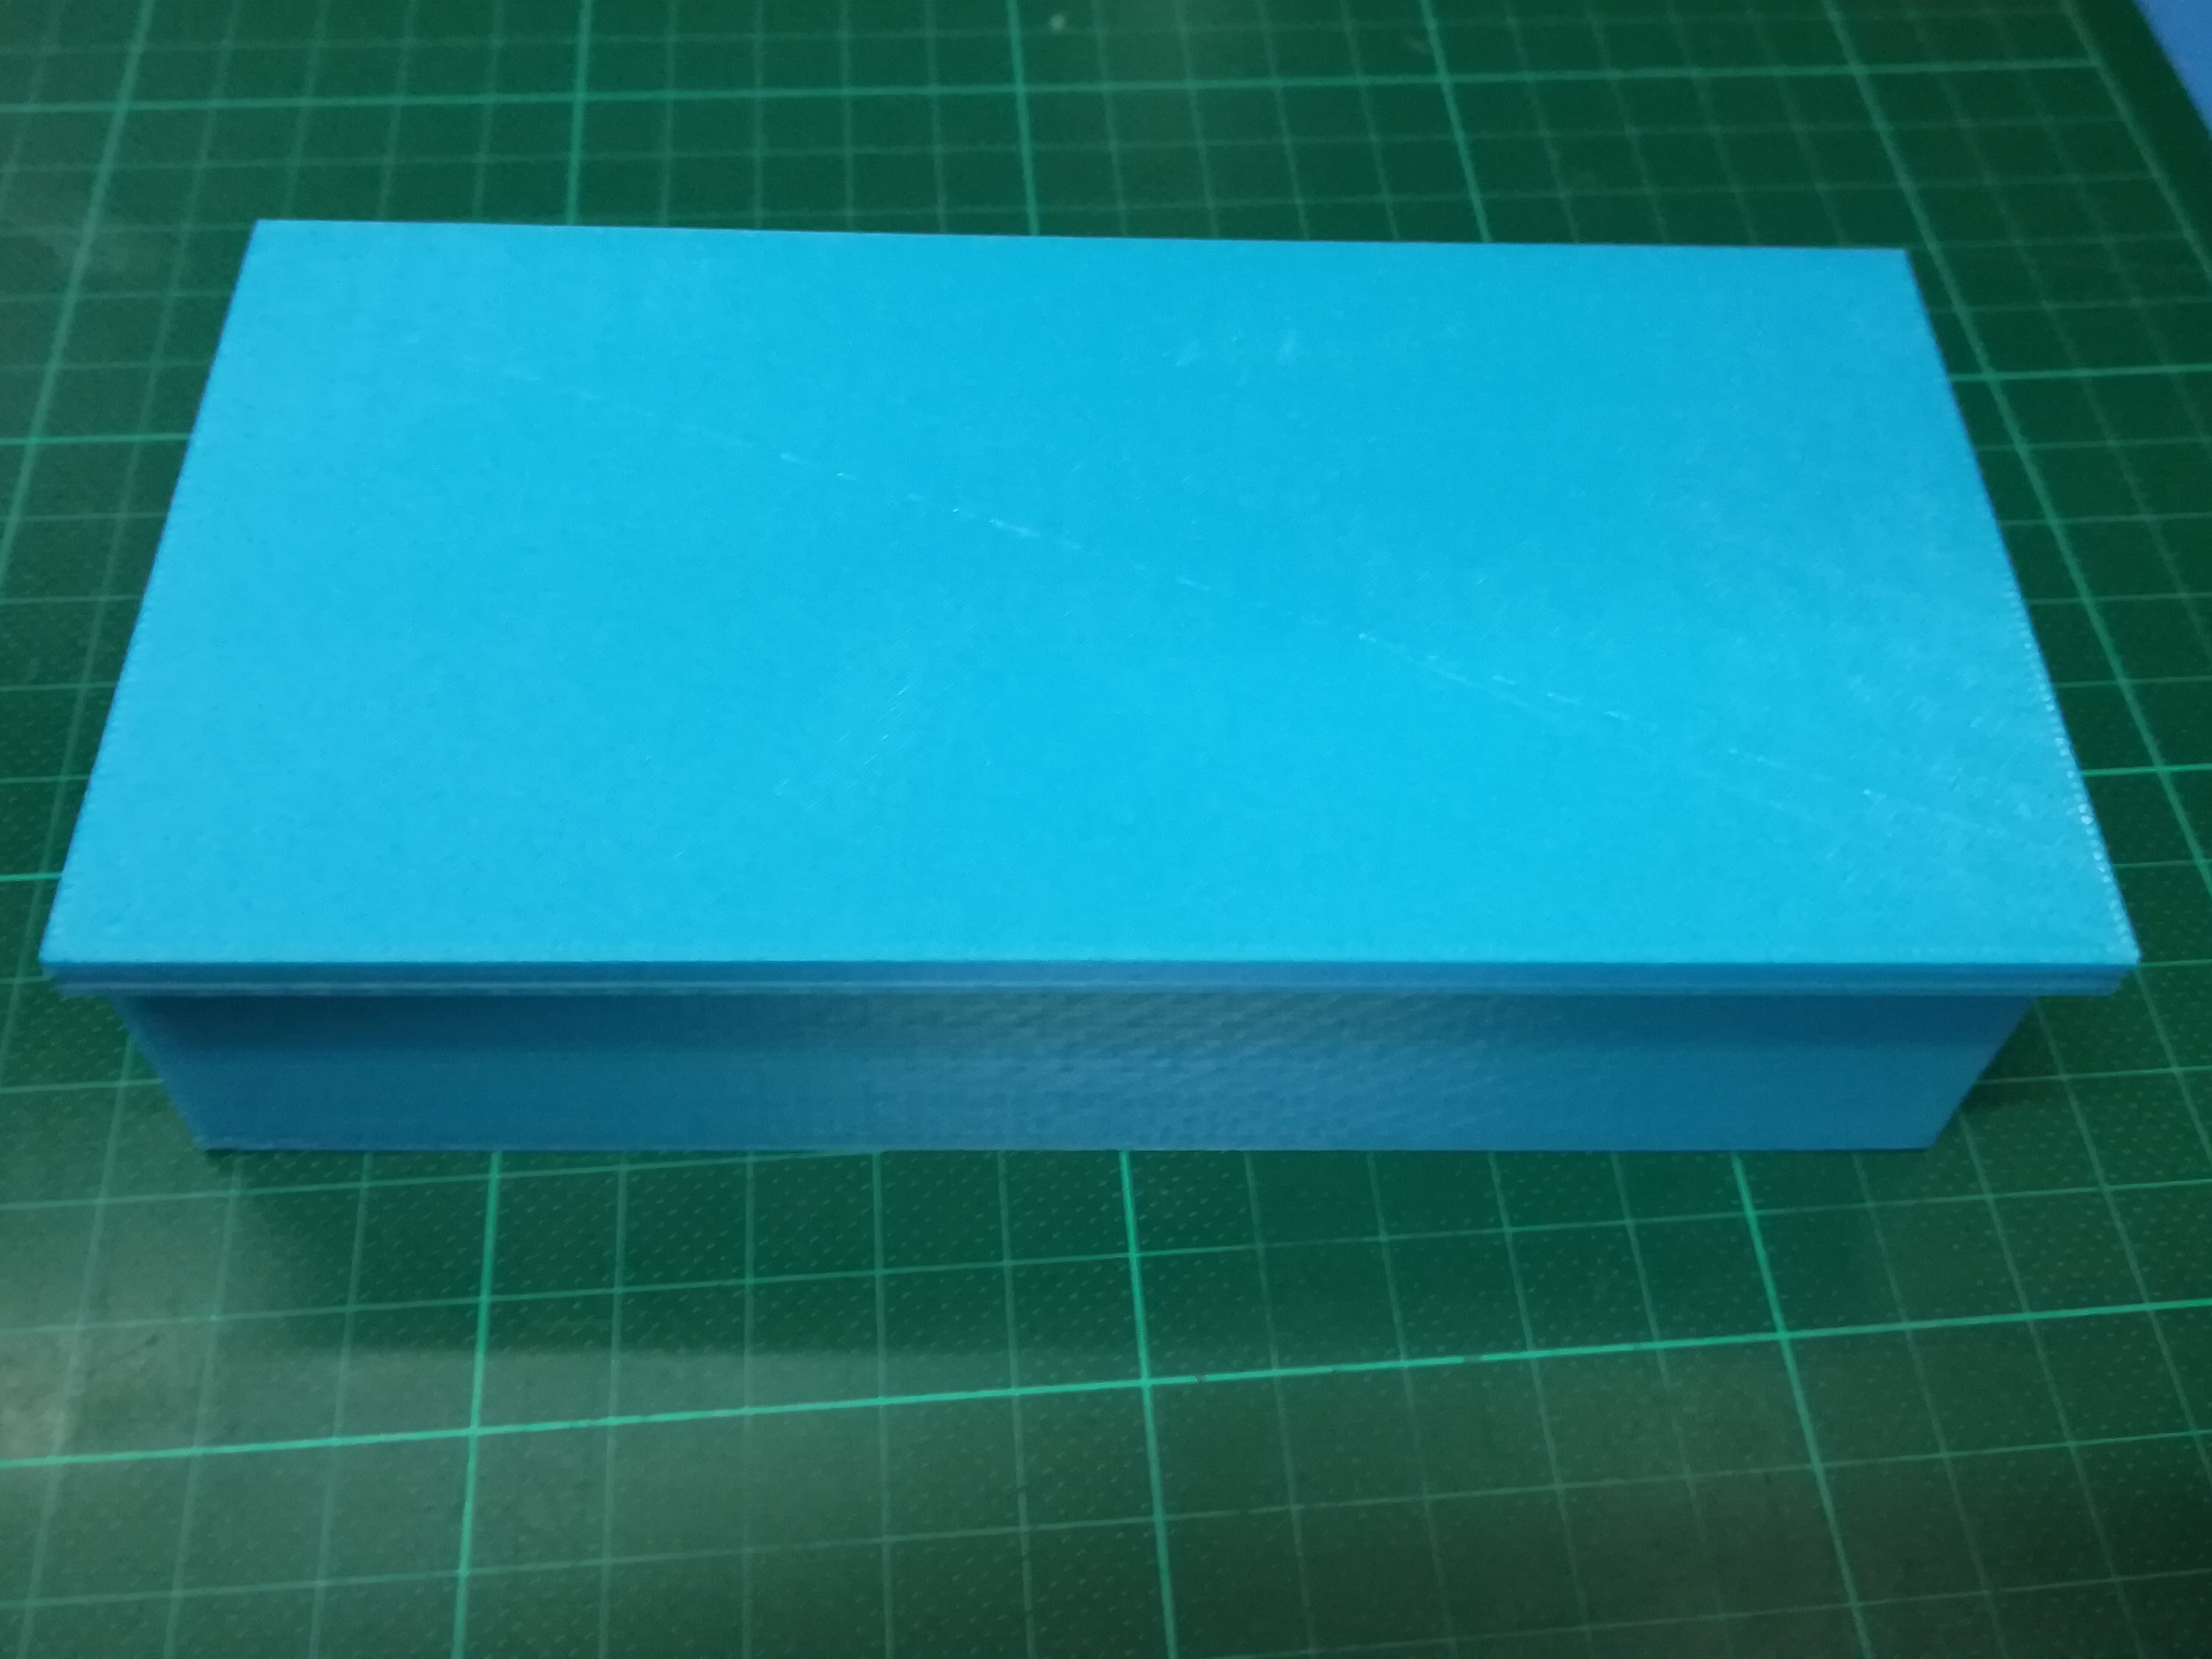 IMG_20180904_215015.jpg Download free STL file Box with sliding lid • 3D printer object, Michael_moi